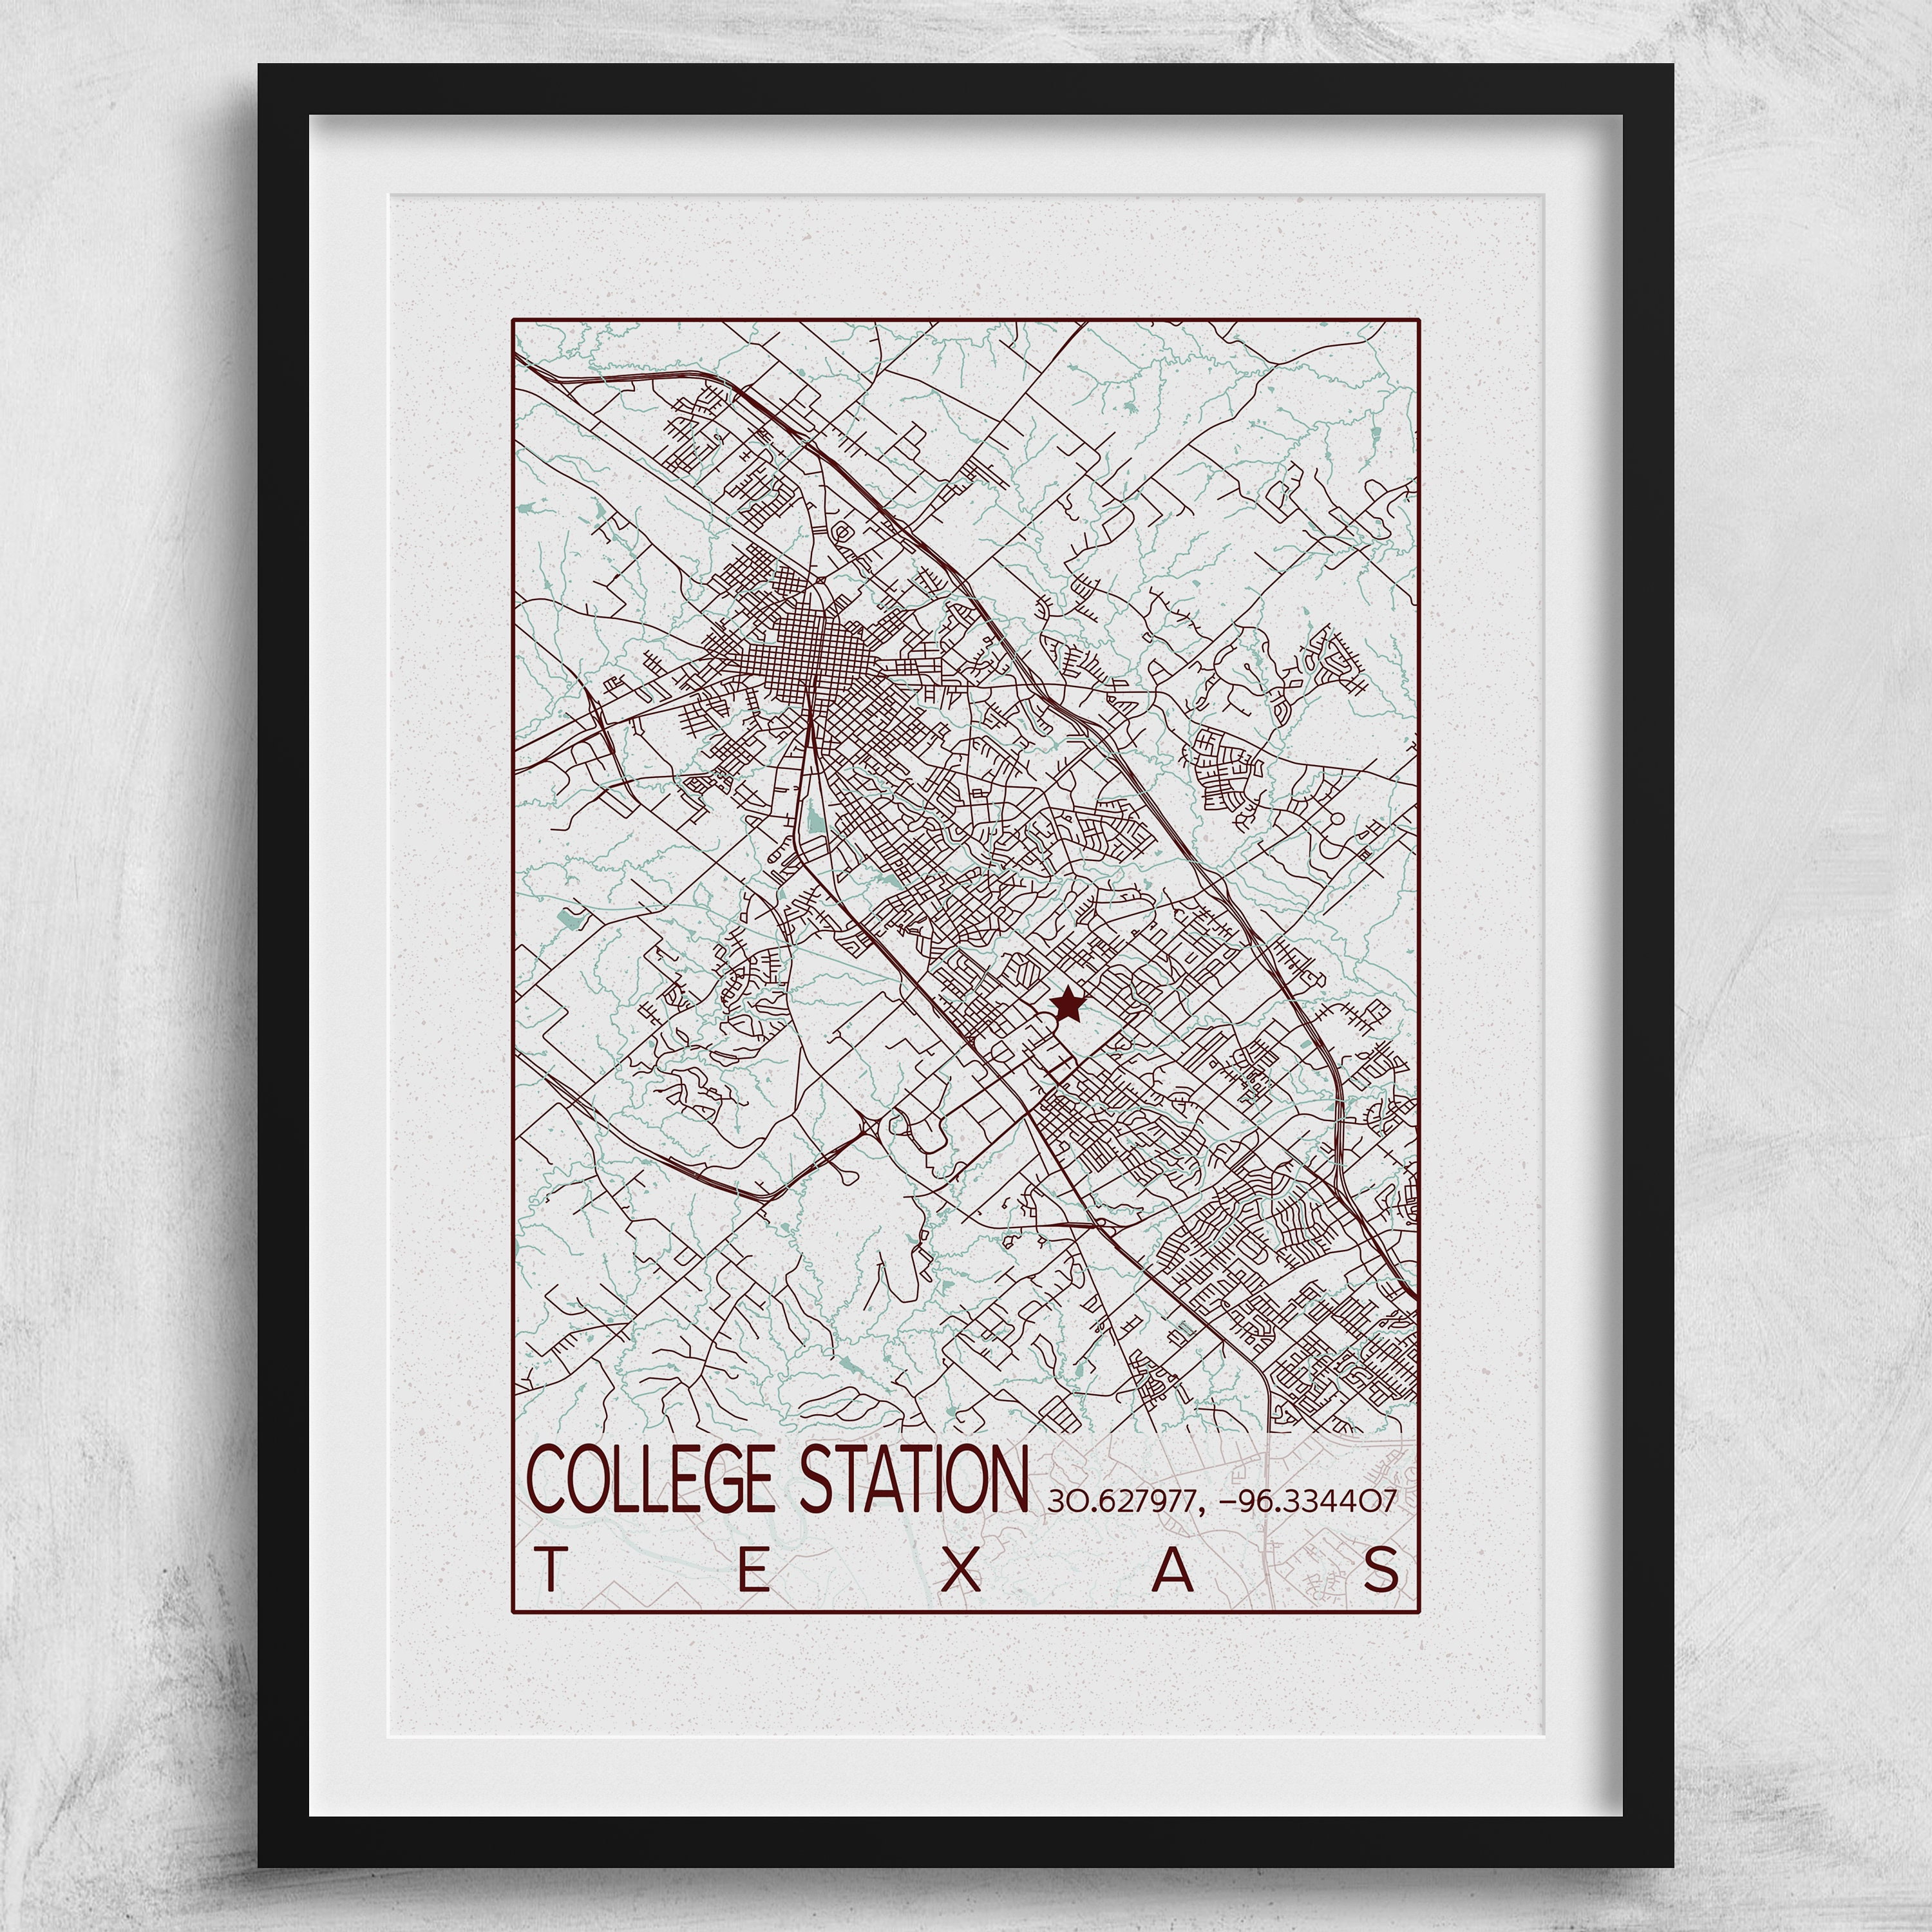 College Station Map Of Texas.College Station Map Texas A M University Poster Print City Of